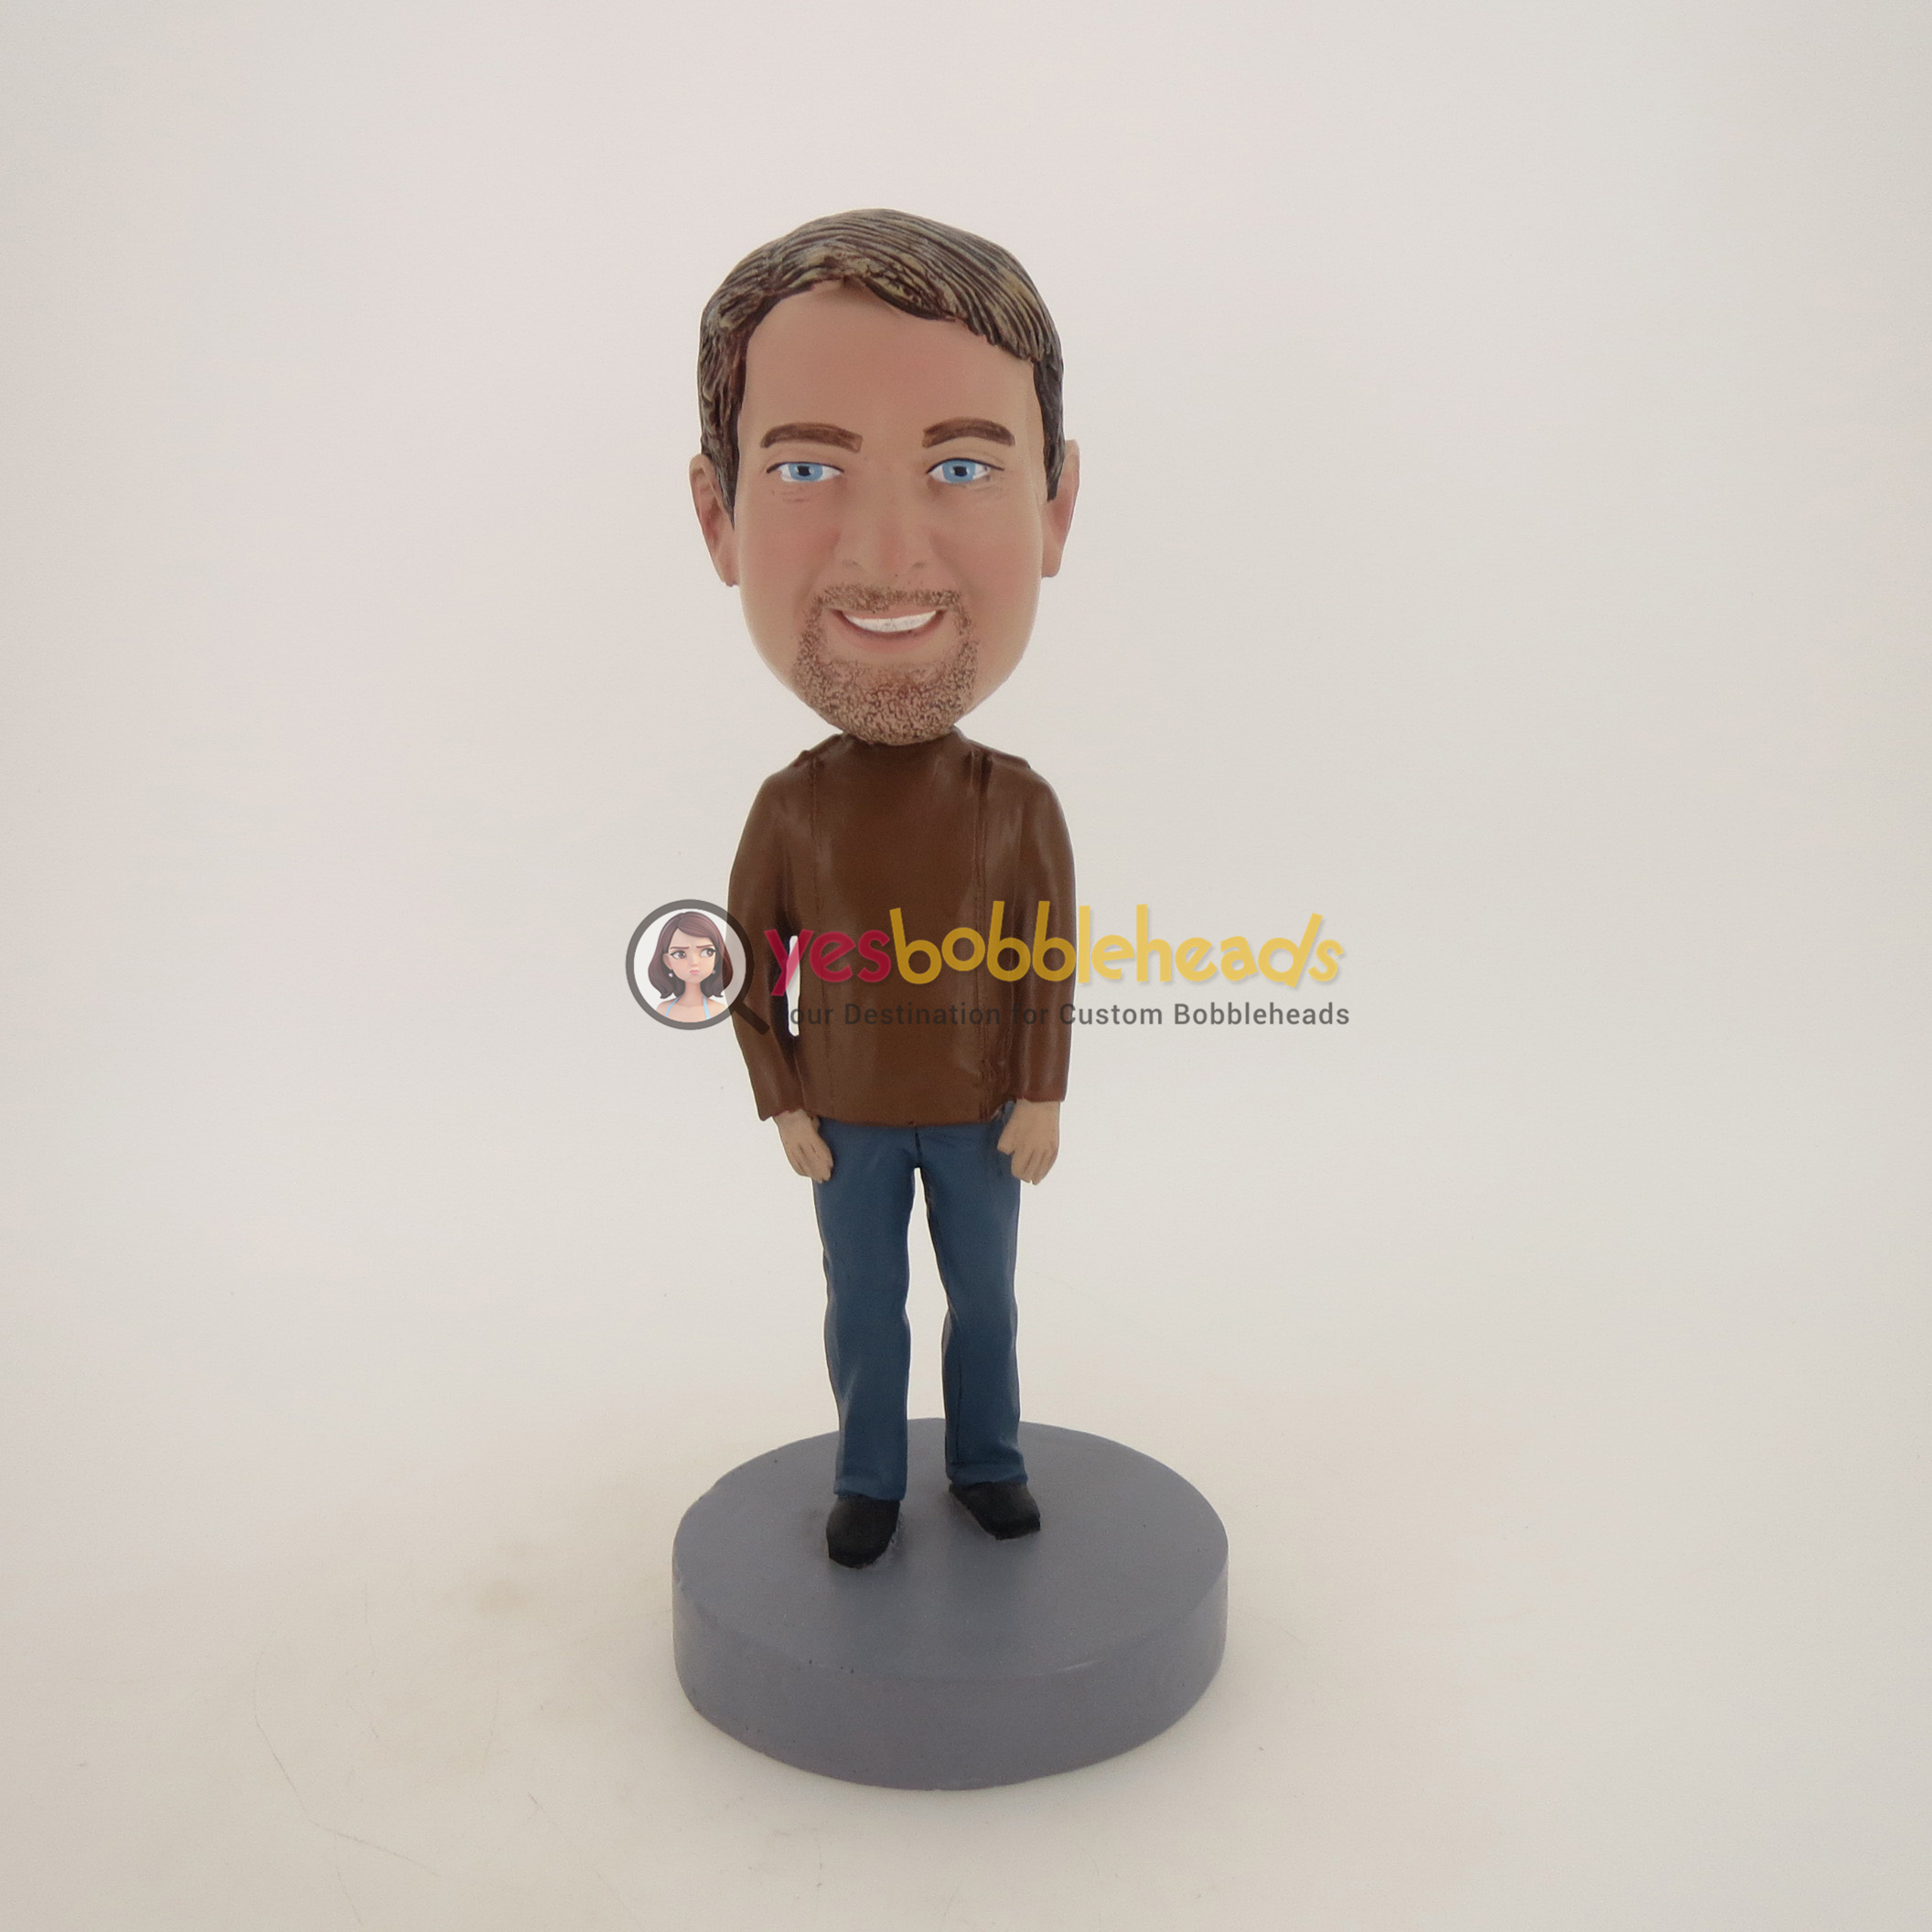 Picture of Custom Bobblehead Doll: Man With Beard In Brown Jacket